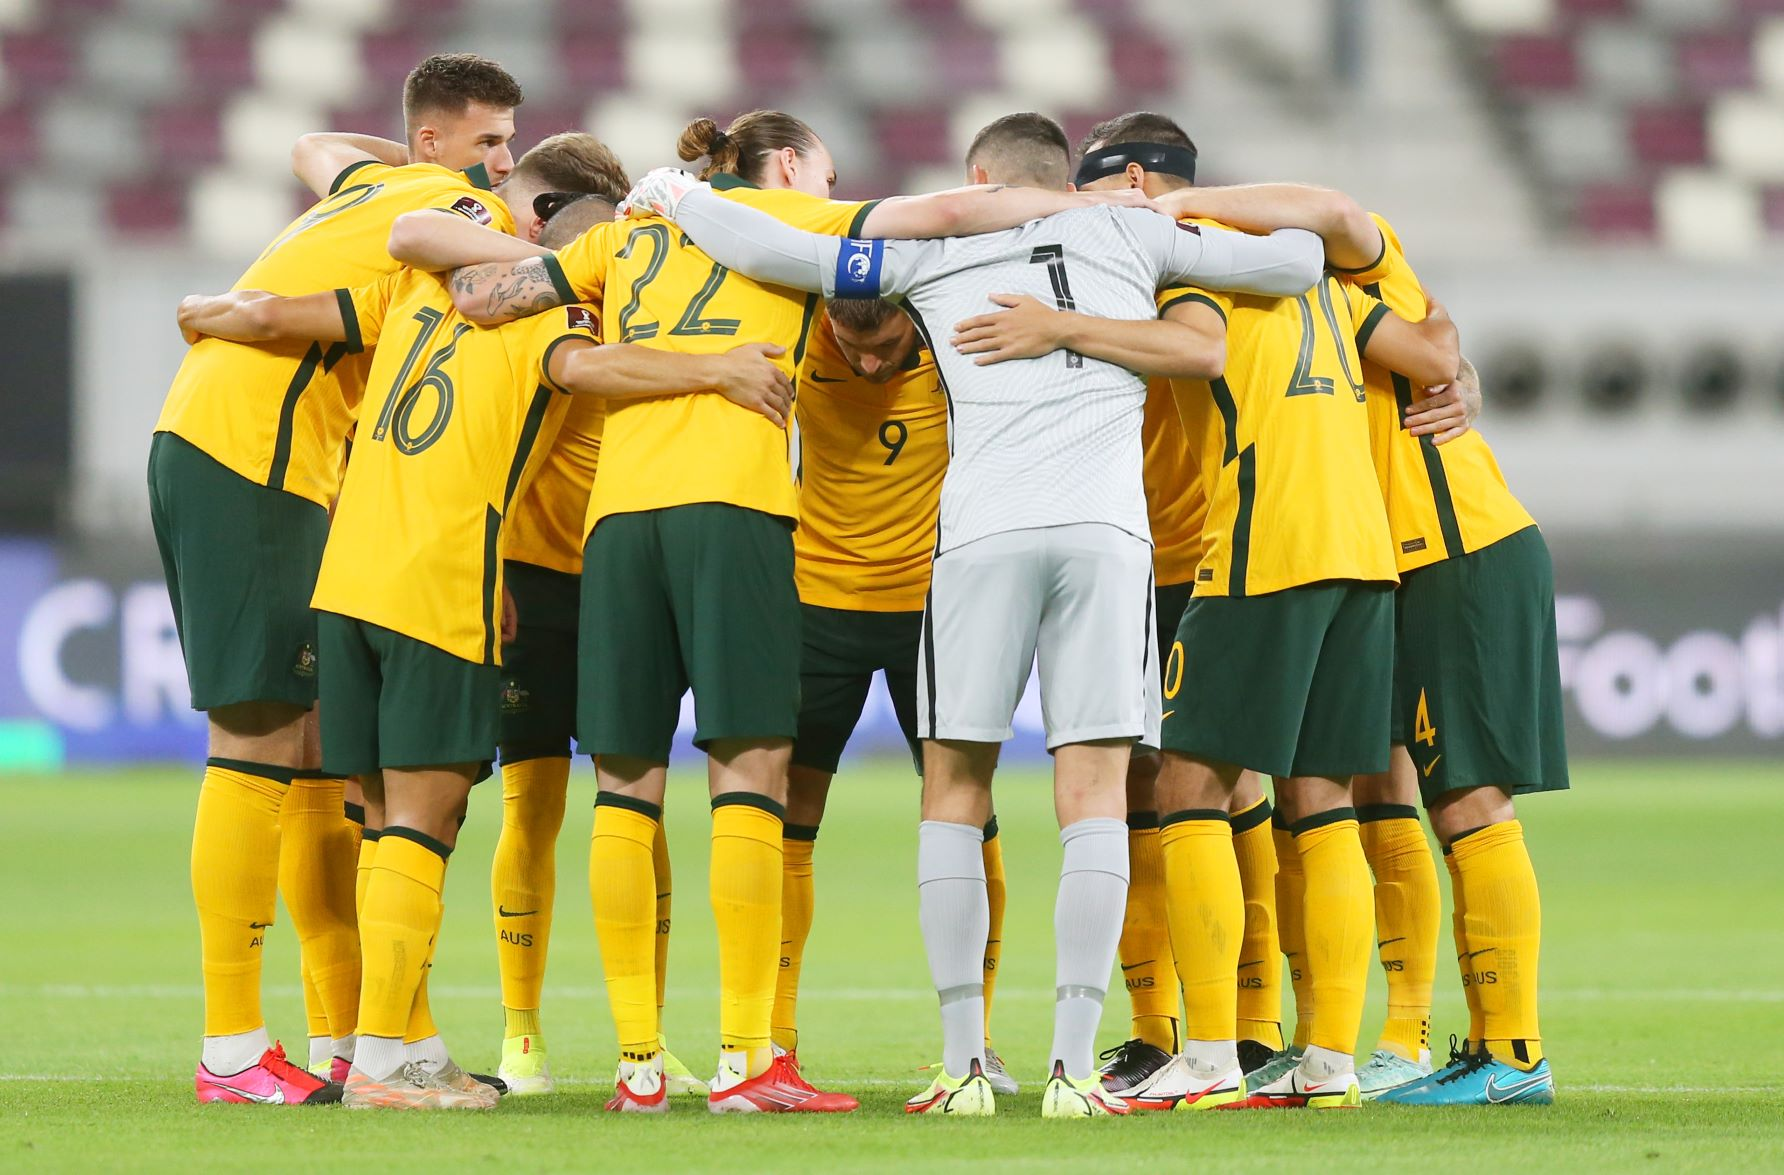 What's subsequent for the Socceroos in FIFA World Cup Qualifying?